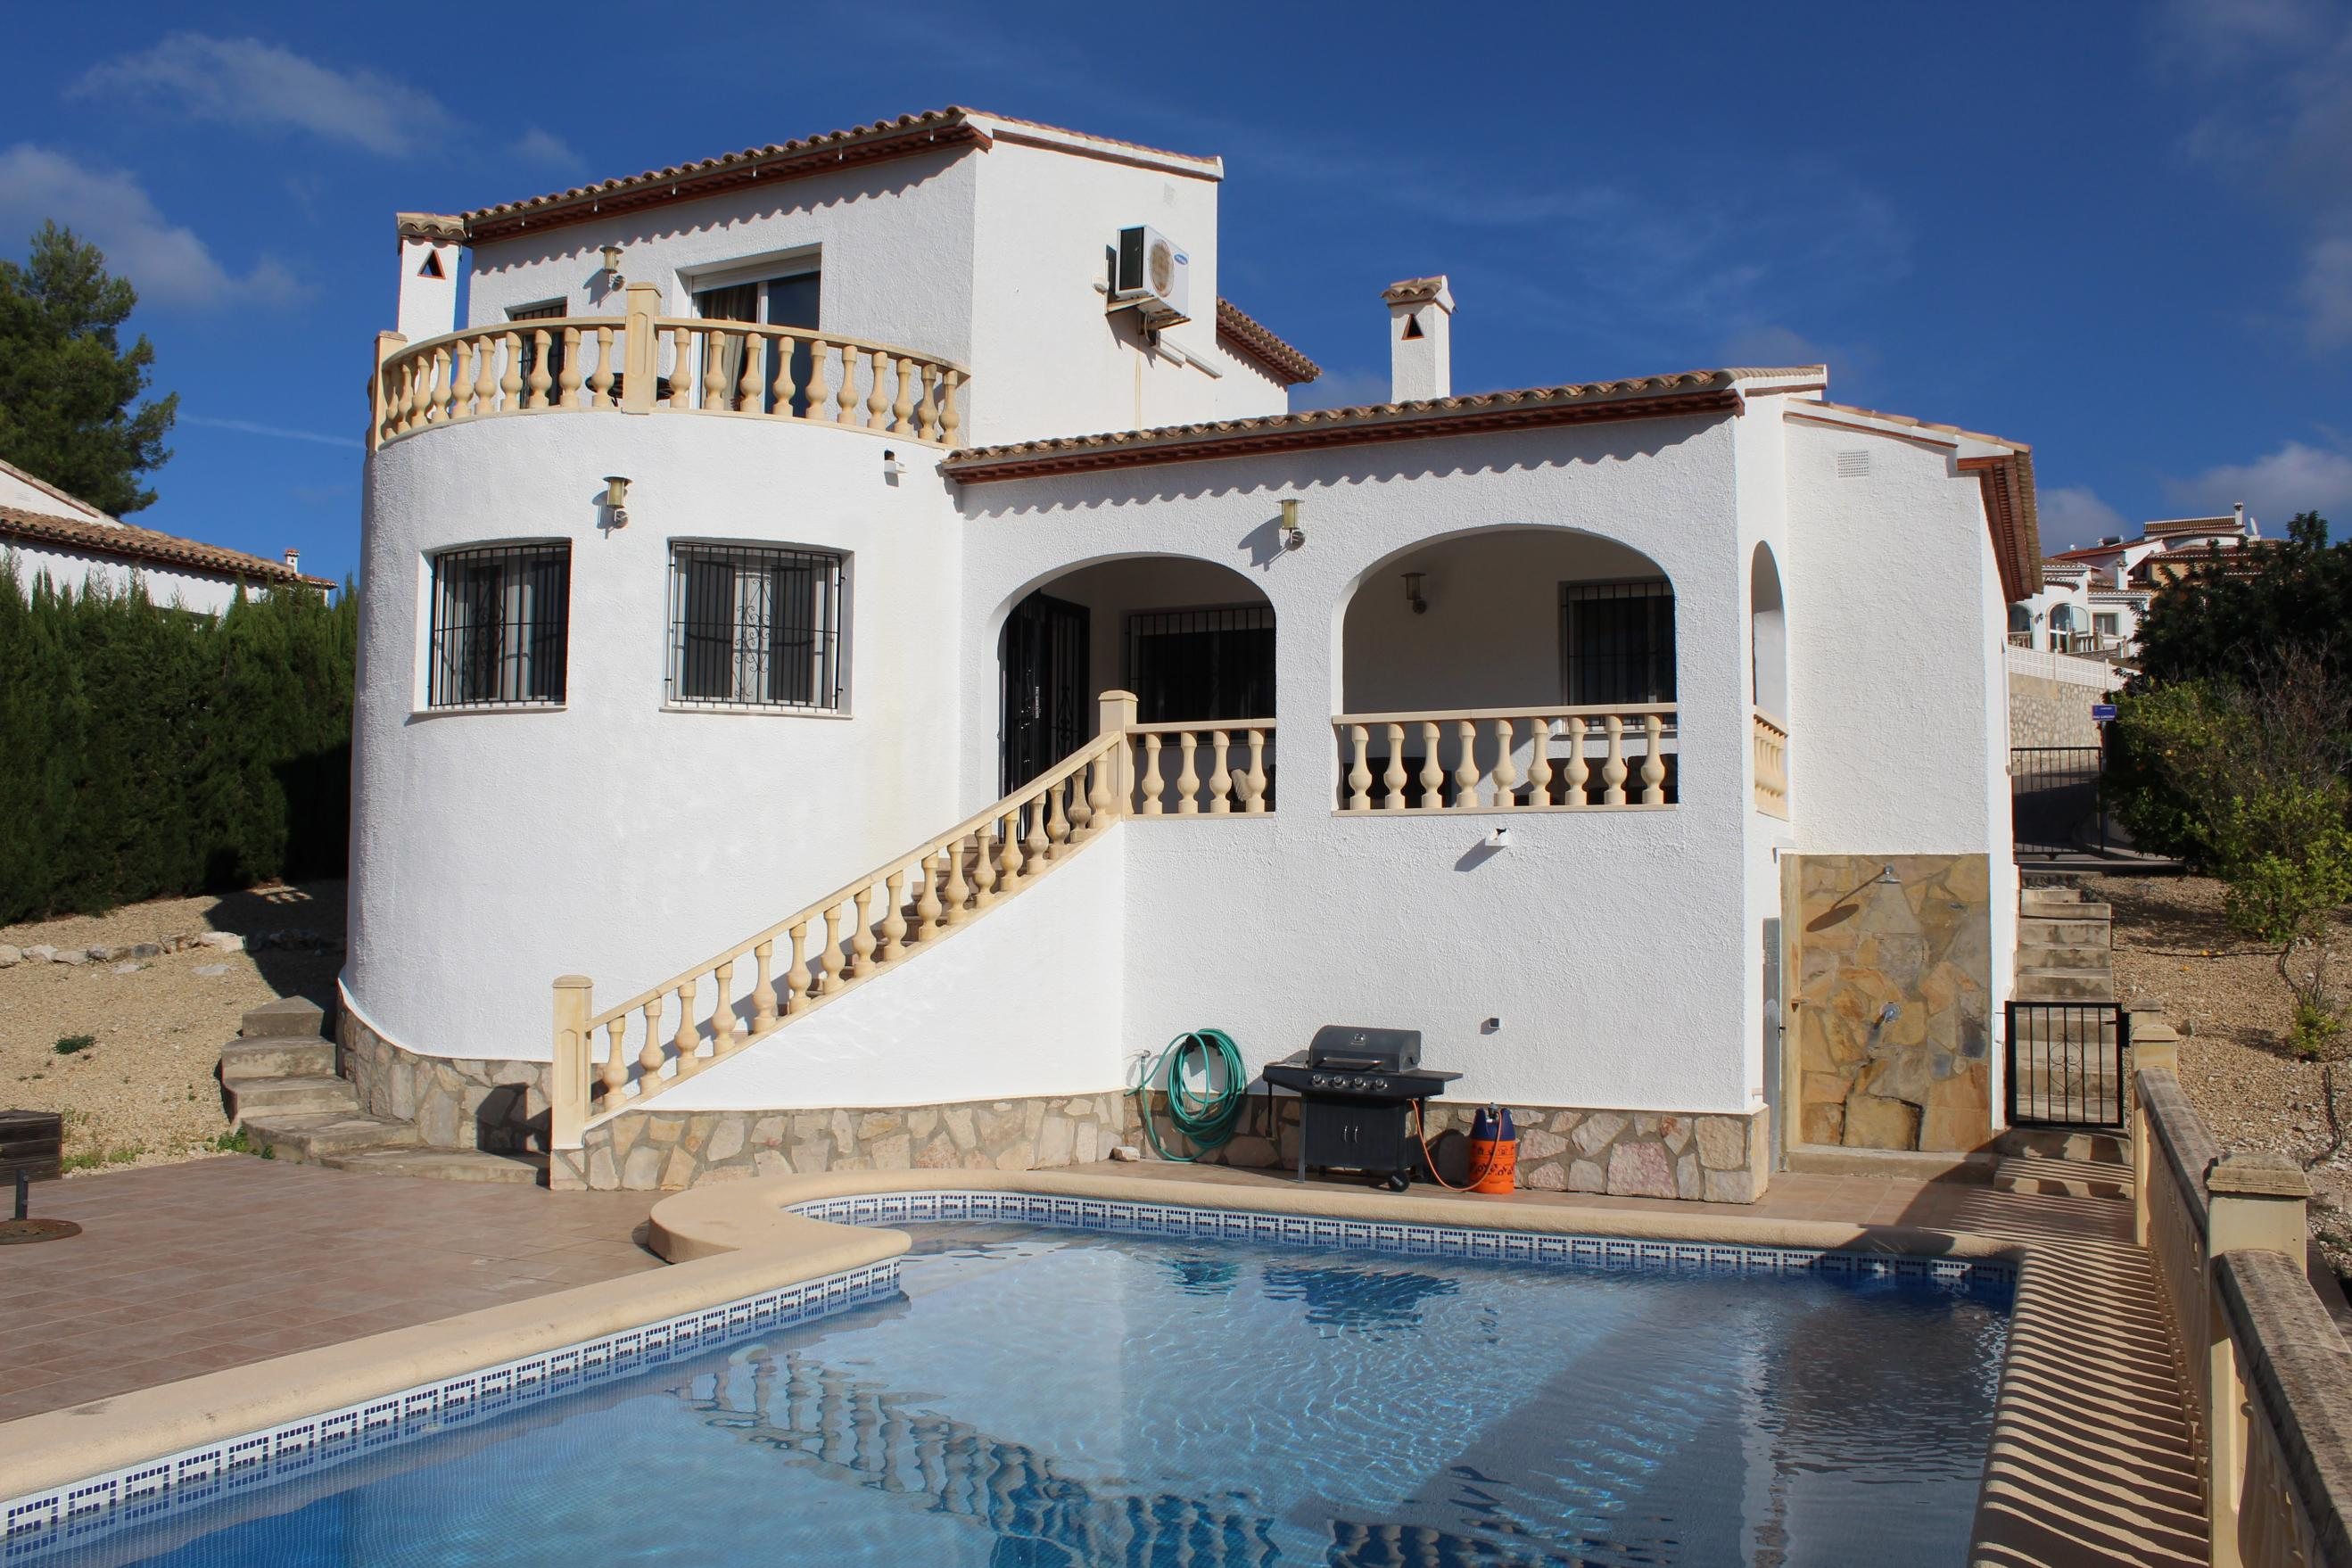 5 Bedroom Villa in Pedreguer